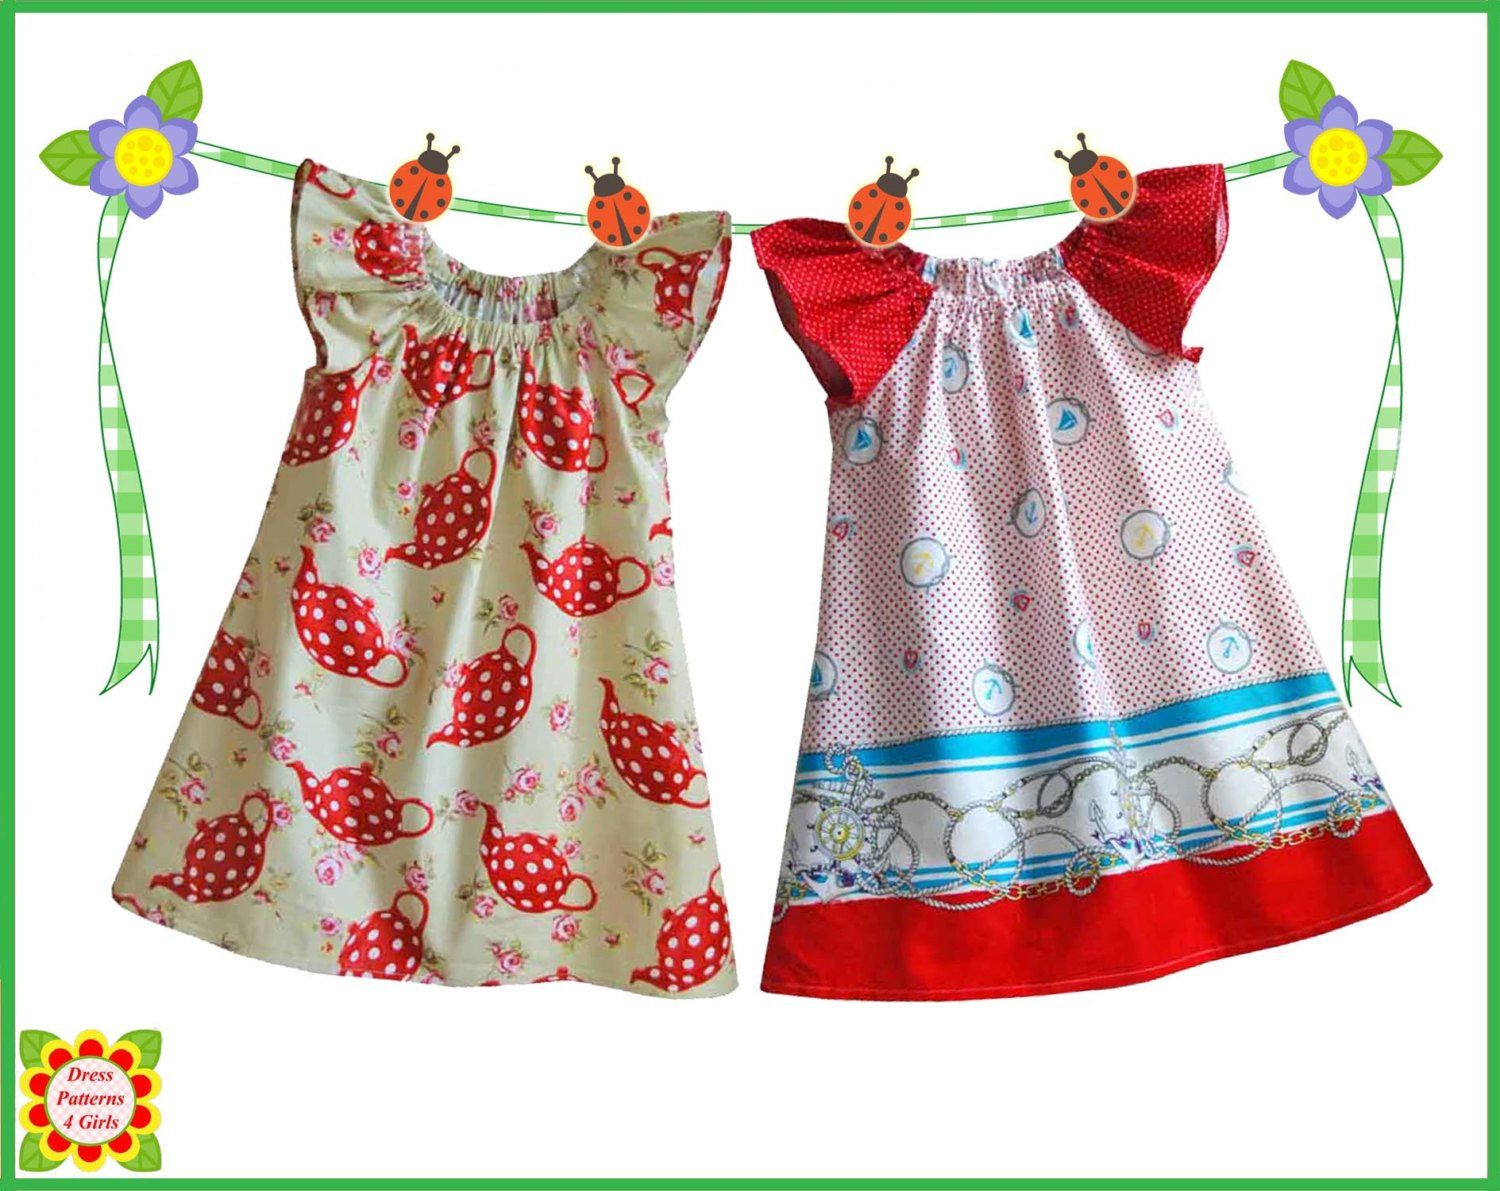 Dress Patterns for Girls Lovely Cecilia Sewing Pattern for Children Free Mother Daughter Of Unique 49 Pics Dress Patterns for Girls